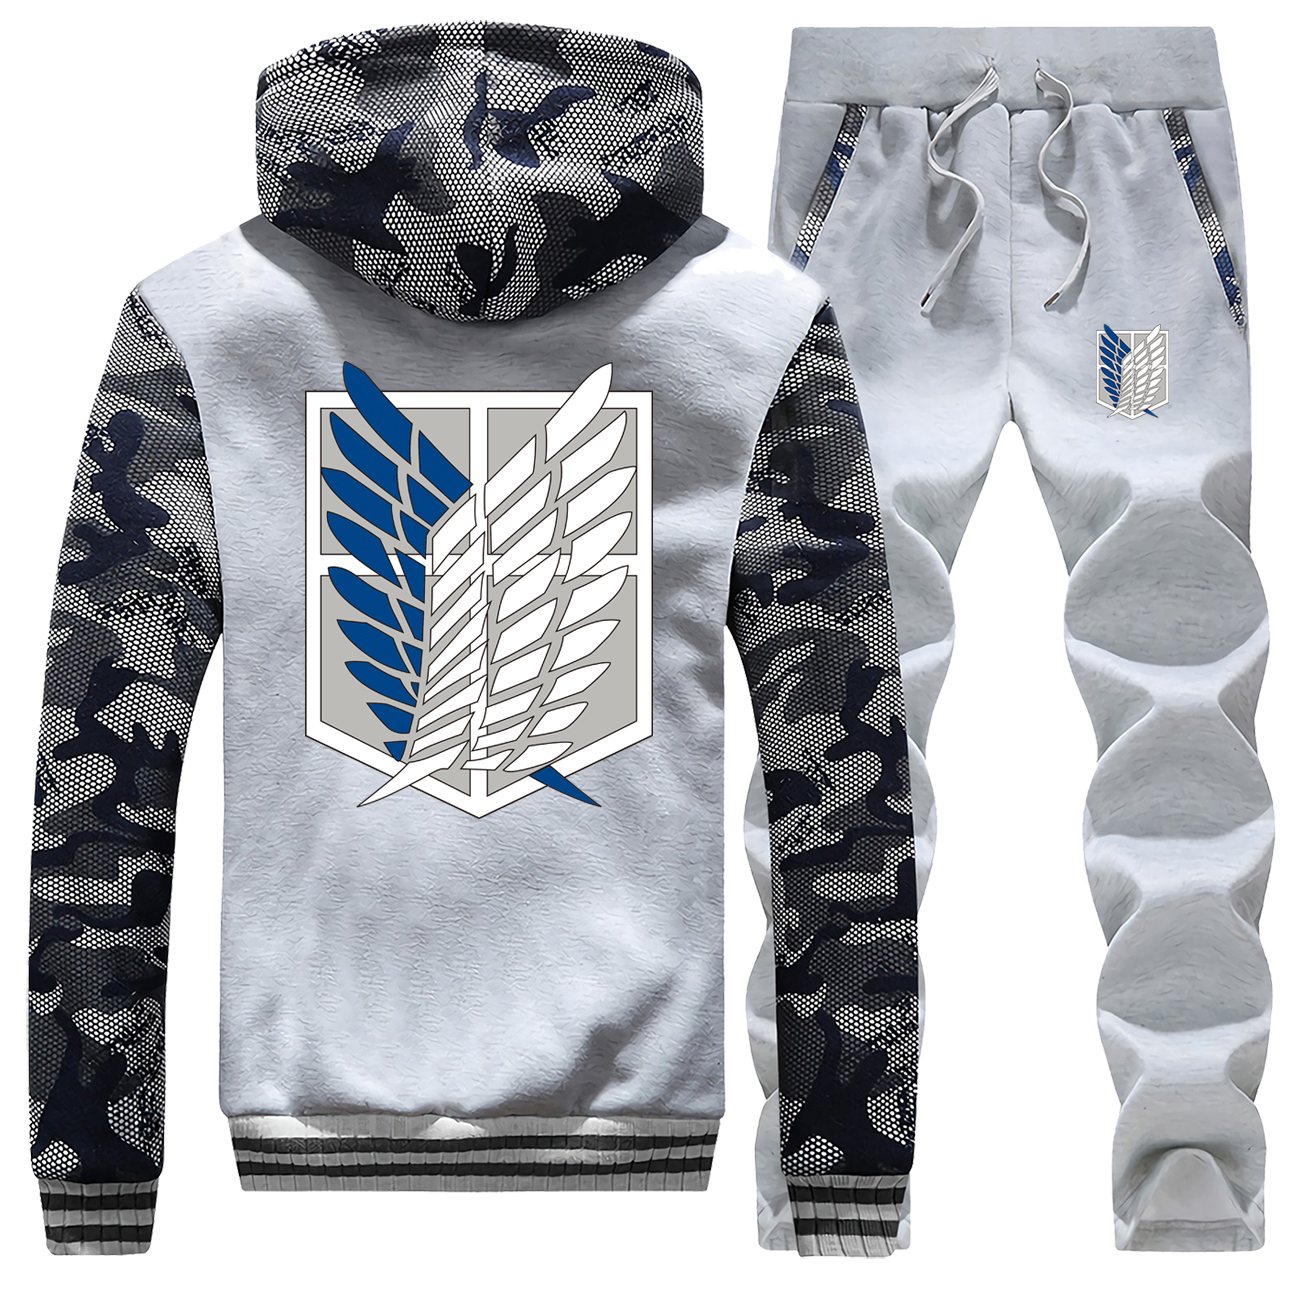 Winter 2019 New Hoodie Attack On Titan Japan Anime Mens Camouflage Coat Thick Fashion Streetwear Suit Jackets+Pants 2 Piece Set